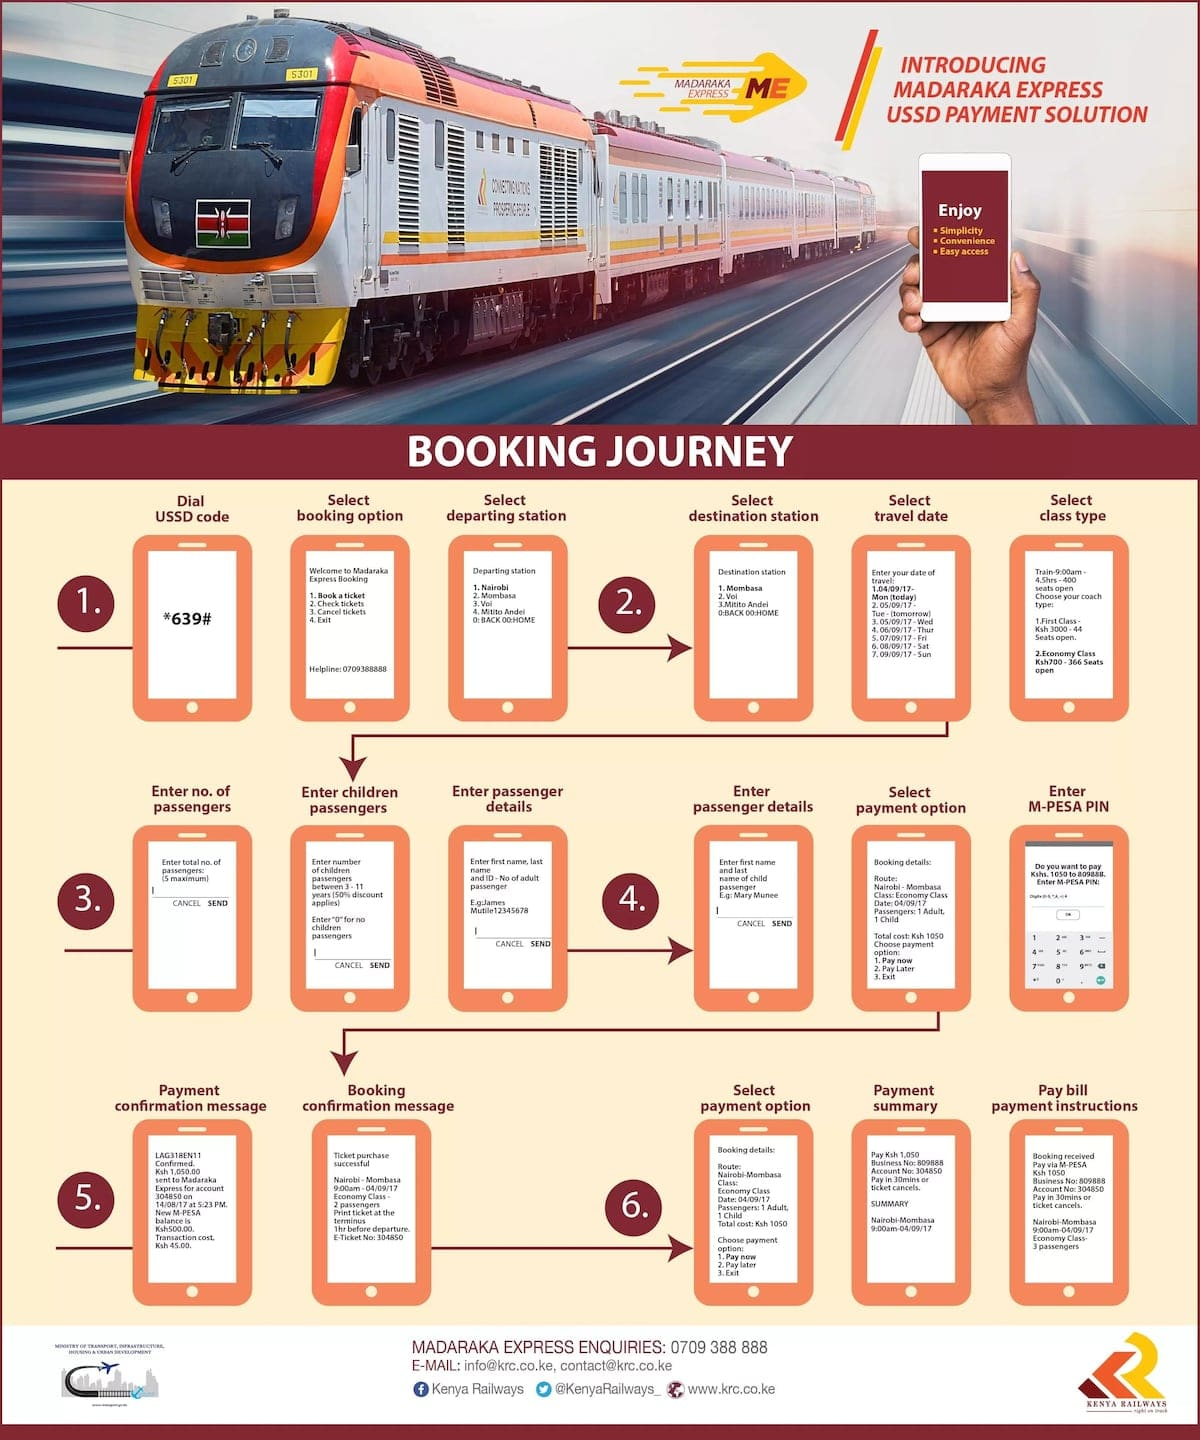 sgr booking office contacts sgr booking website sgr Kenya contacts madaraka express booking guide sgr booking contacts mombasa